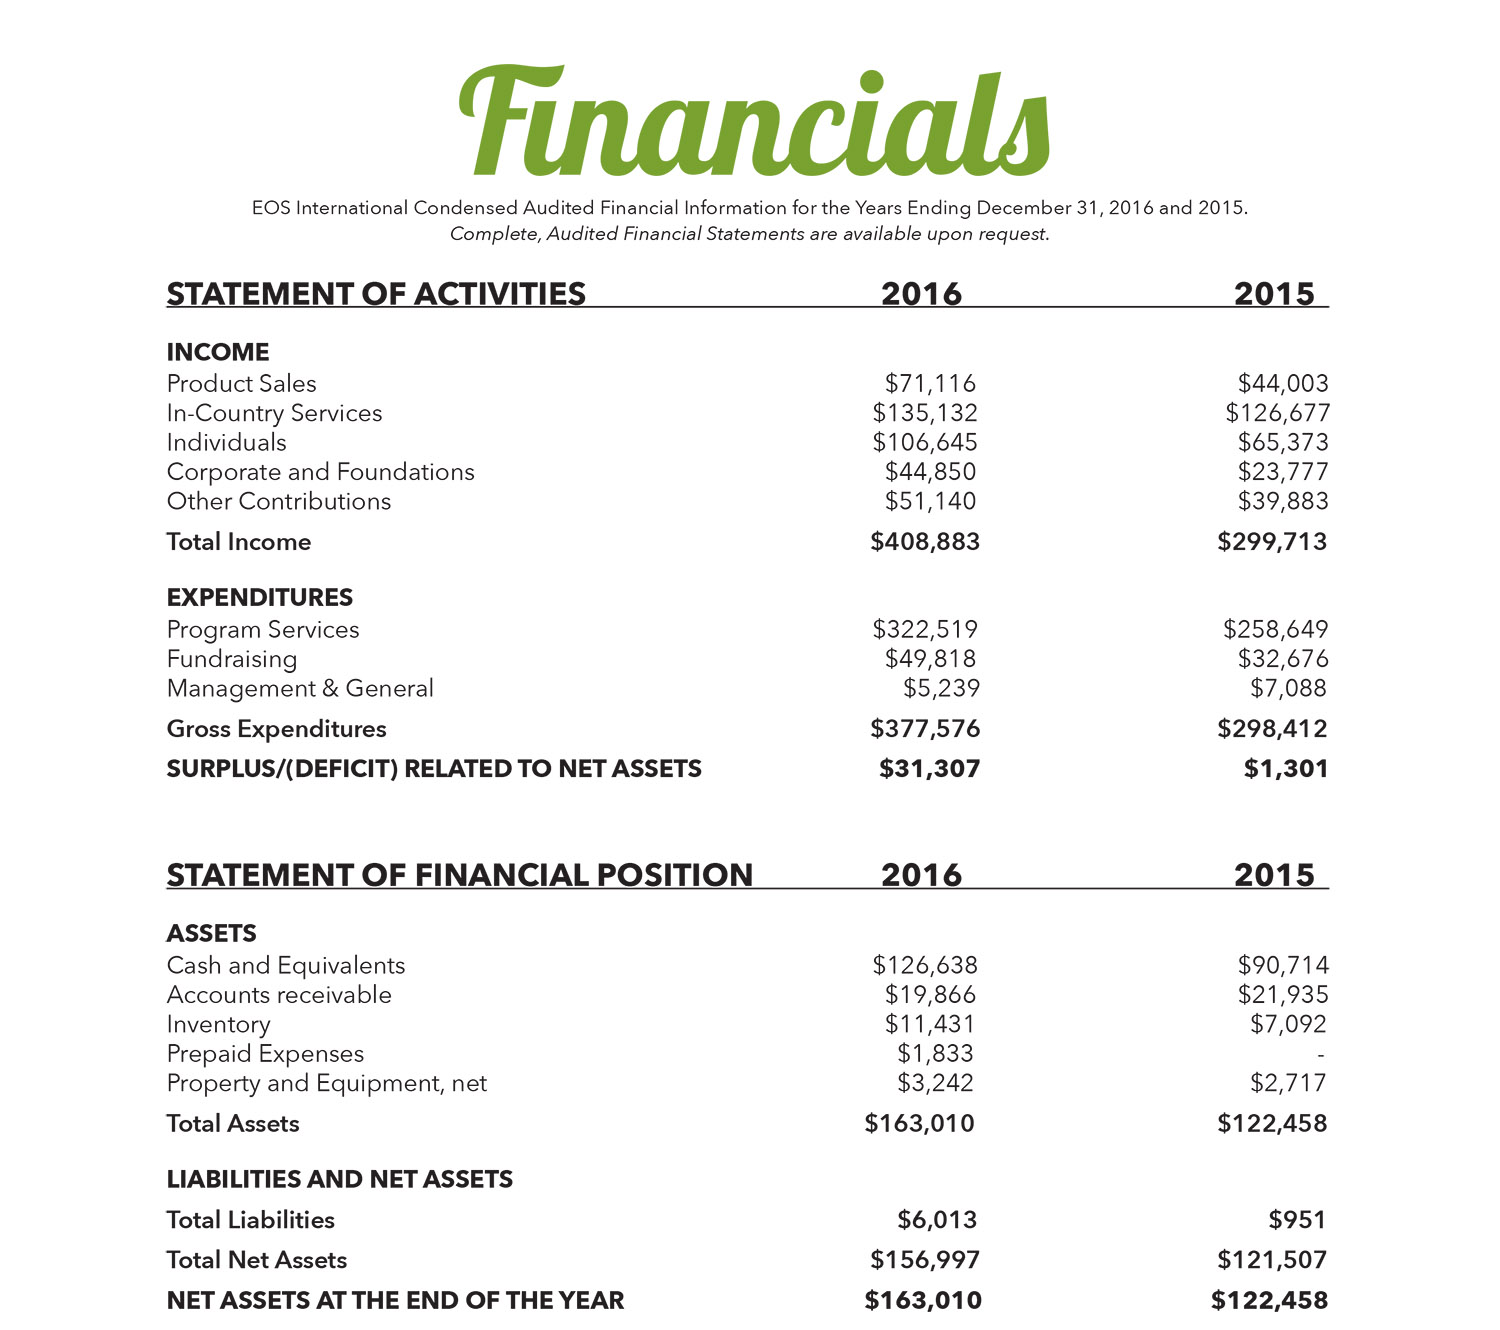 Financials Image 3